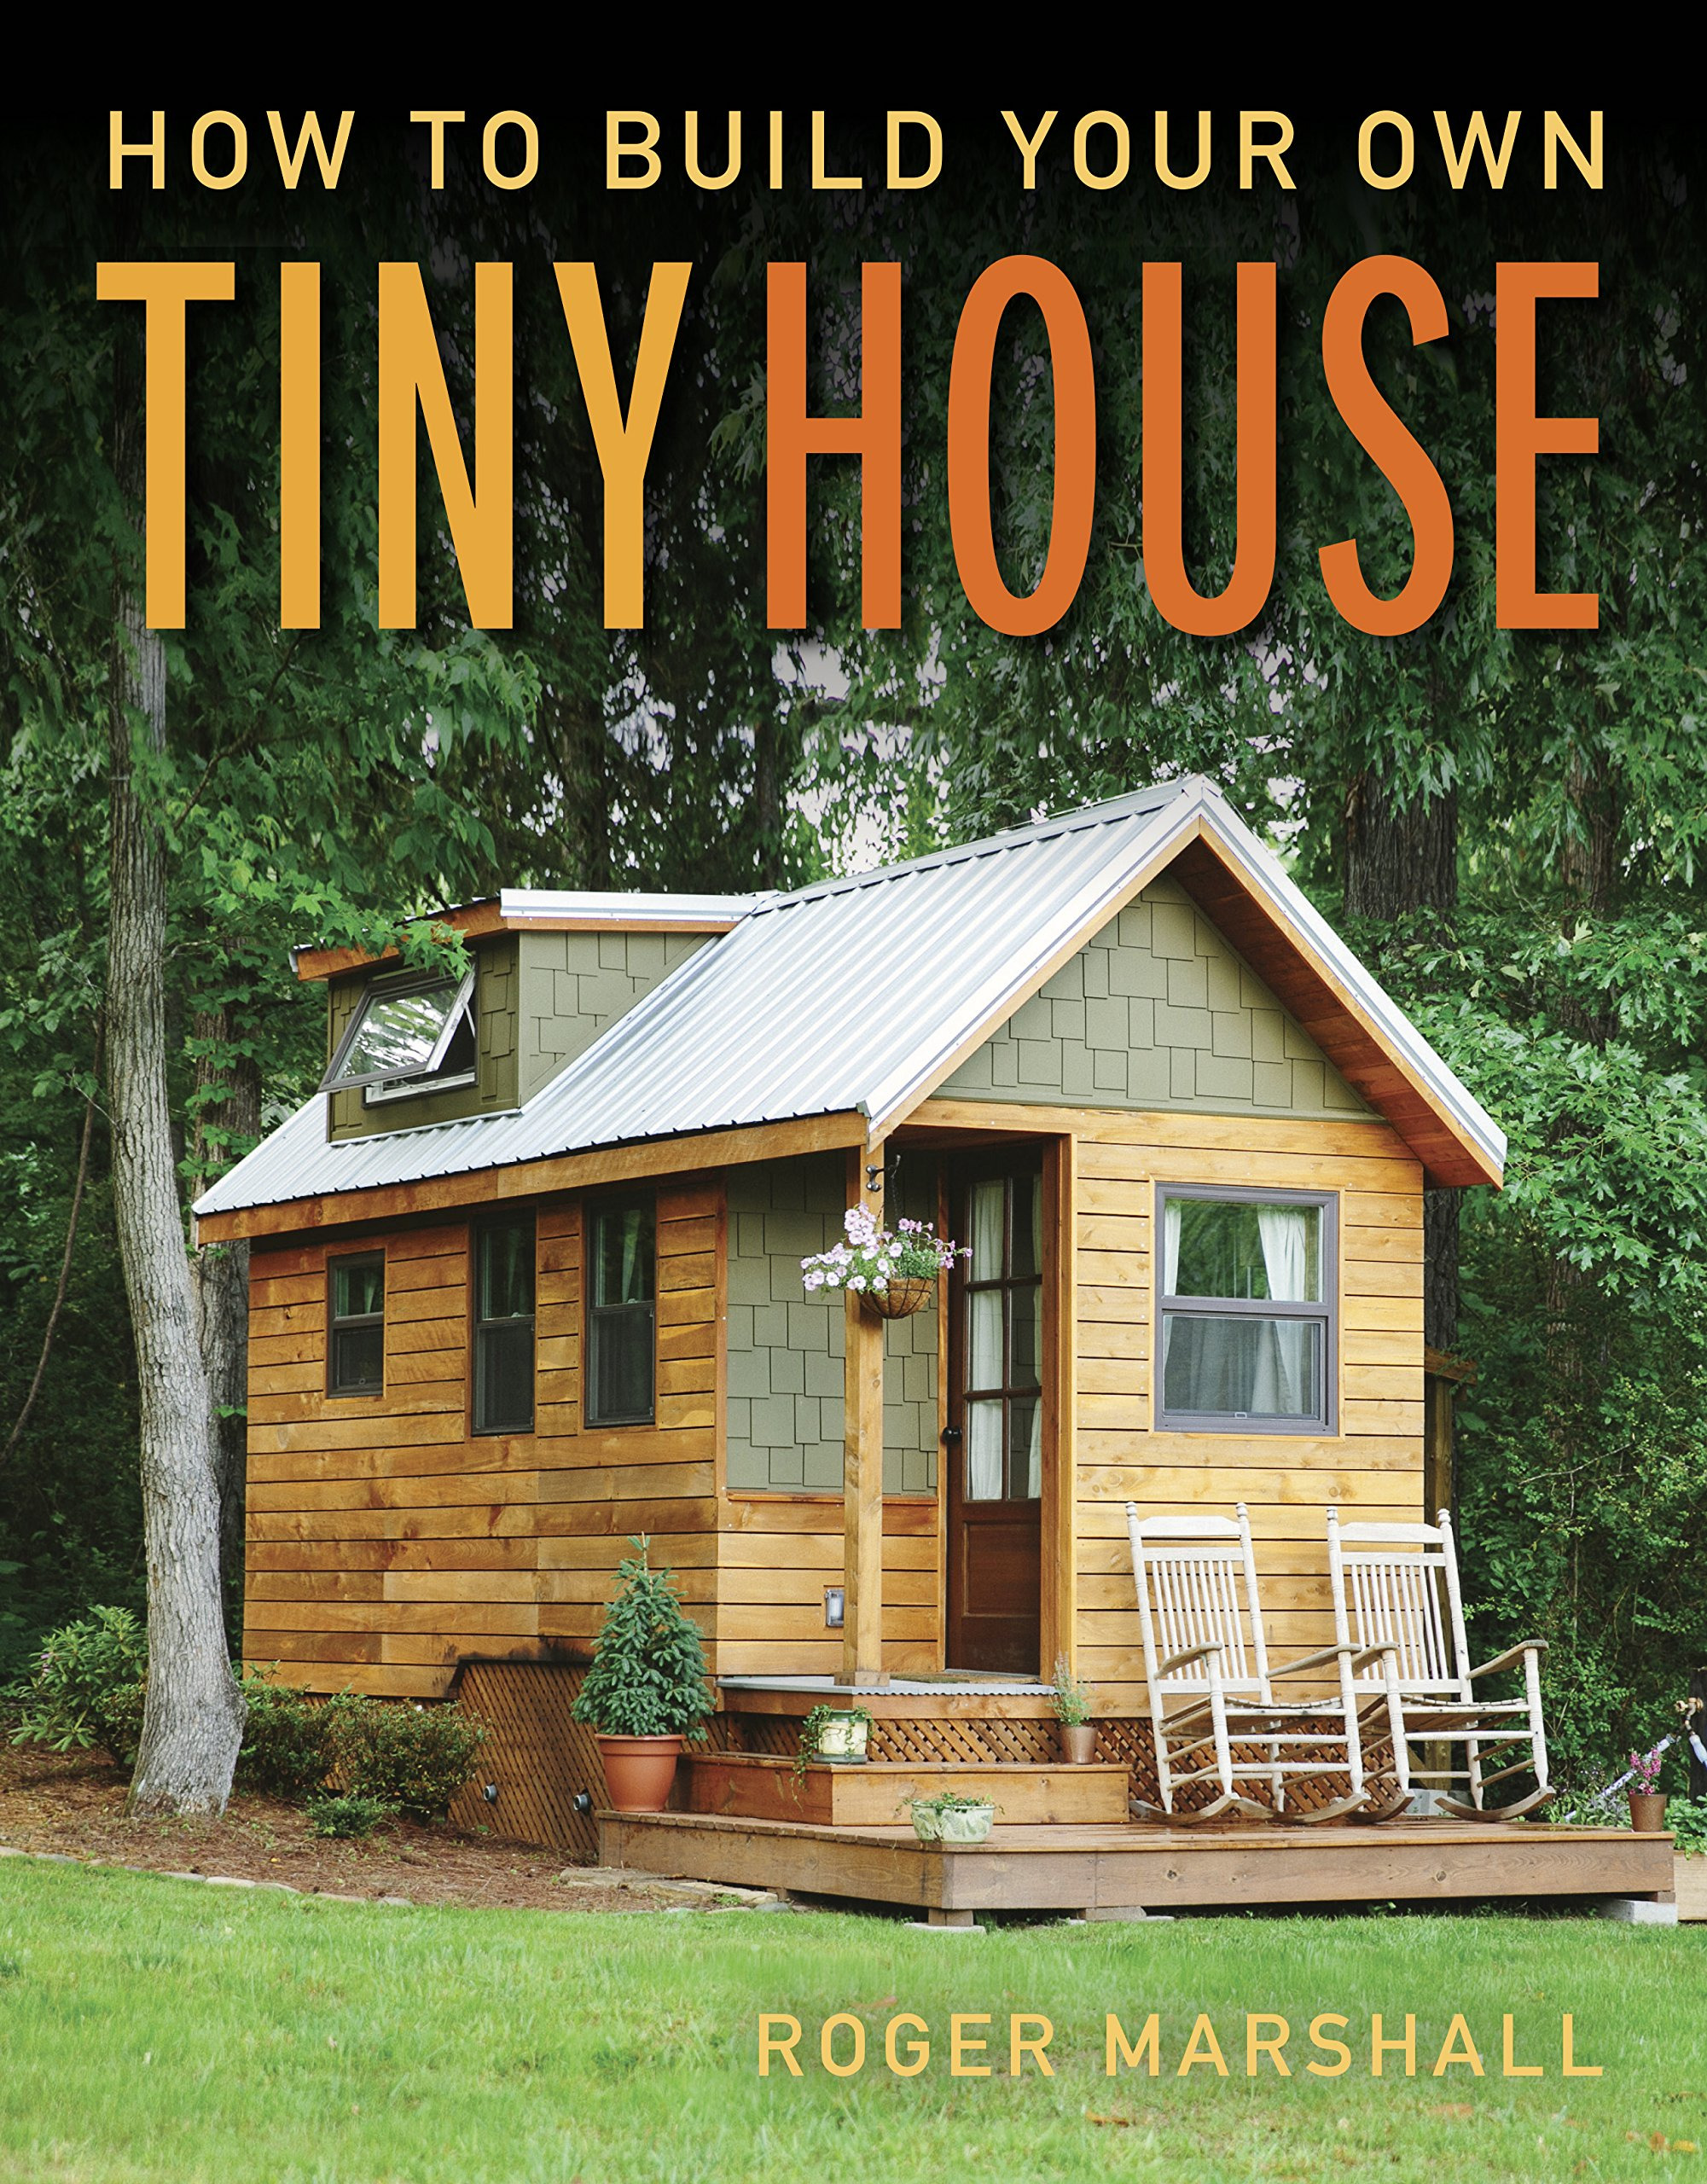 Small Wooden House Plans Awesome How to Build Your Own Tiny House Amazon Roger Marshall